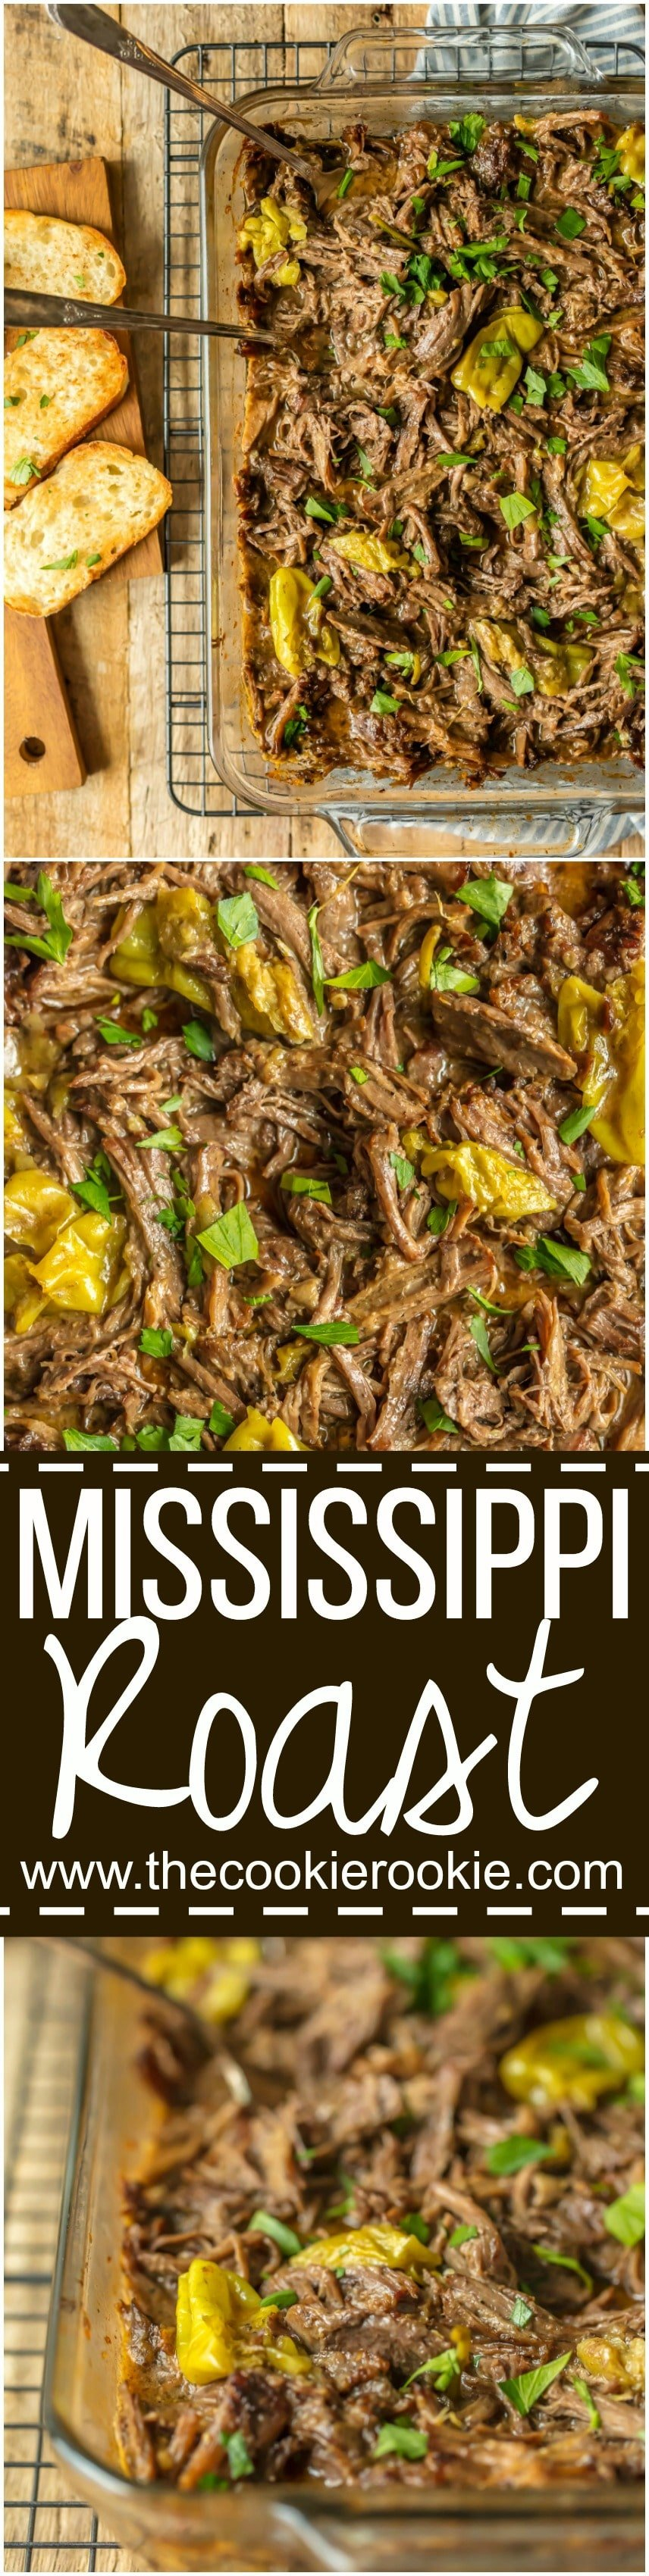 This MISSISSIPPI ROAST is the absolute best slow cooker roast beef you will EVER make! Made famous throughout the years, you just have to try this! Perfect crockpot roast beef for sandwiches, tacos, and beyond!